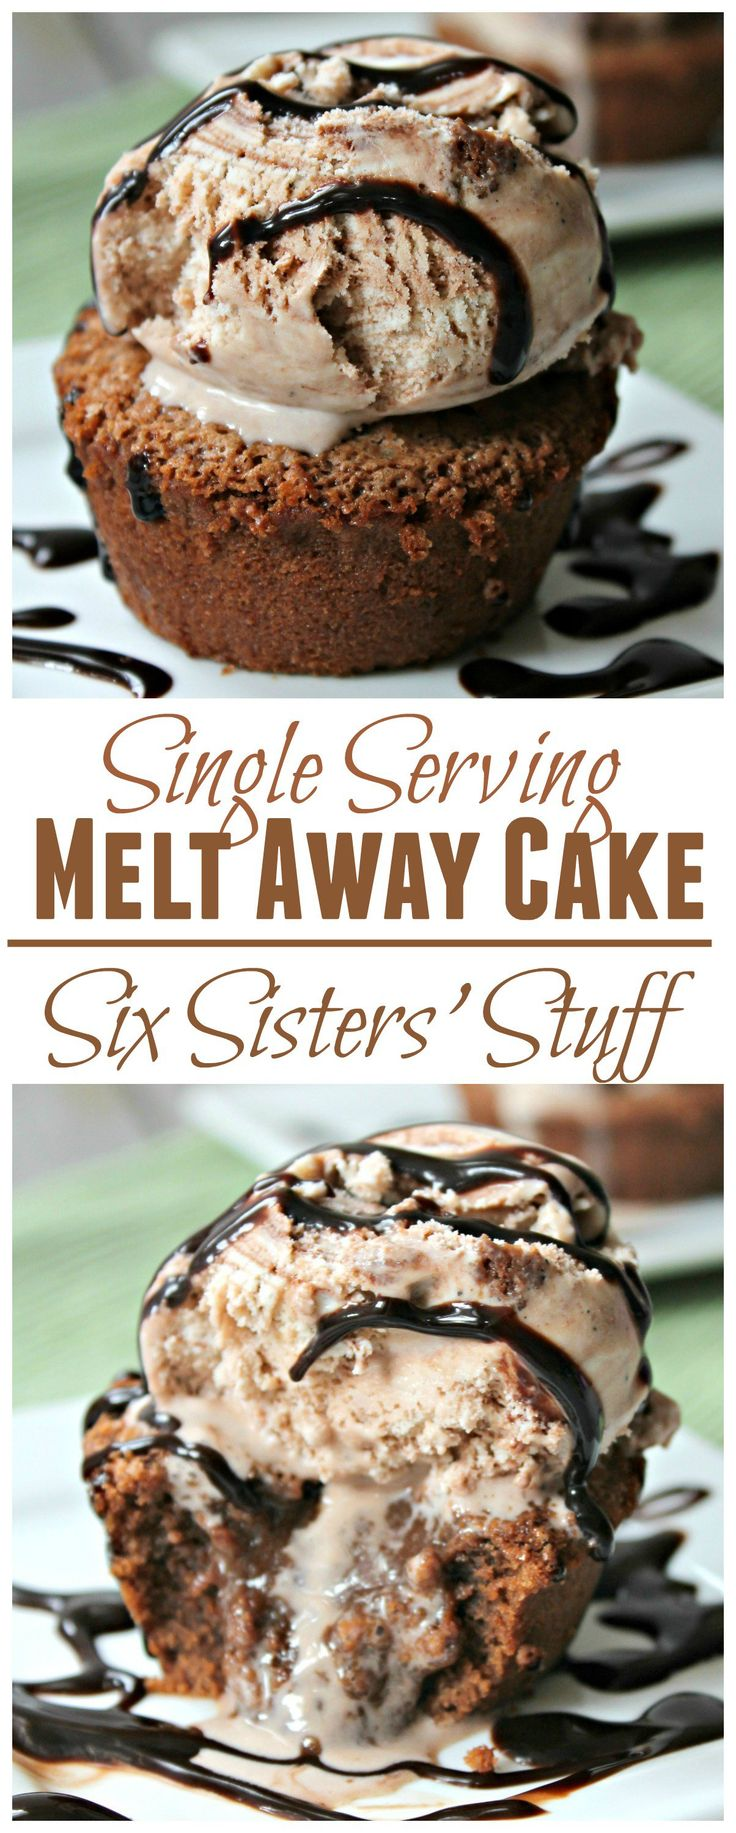 Single Serving Melt-Away Cake